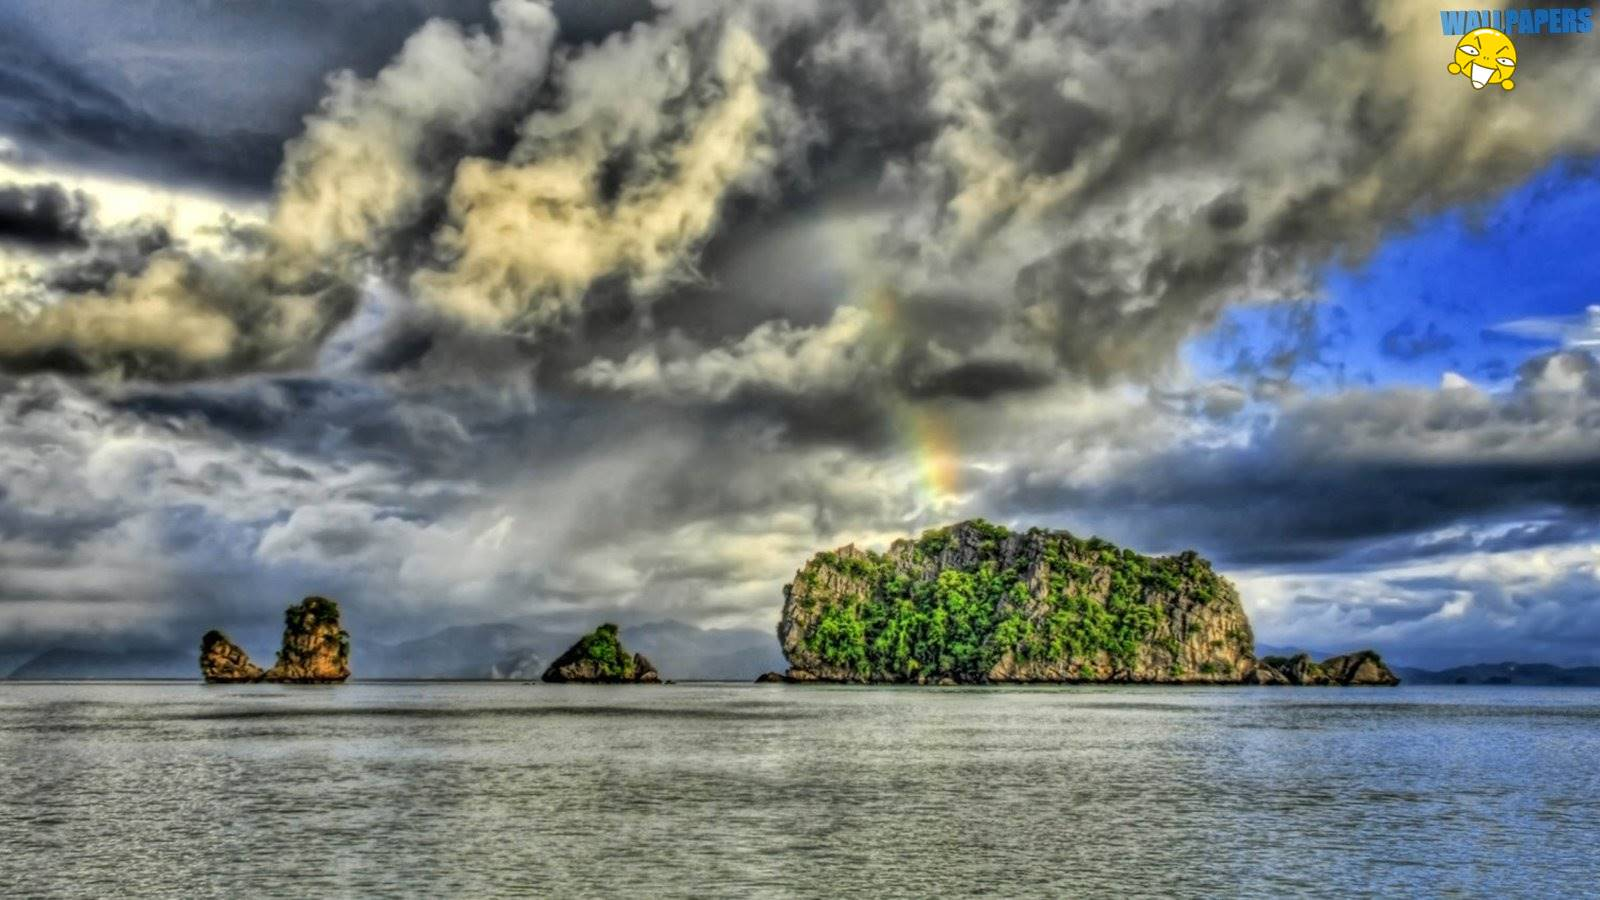 Rainbow ocean hdr wallpaper 1600215900 Creative Design 1600x900